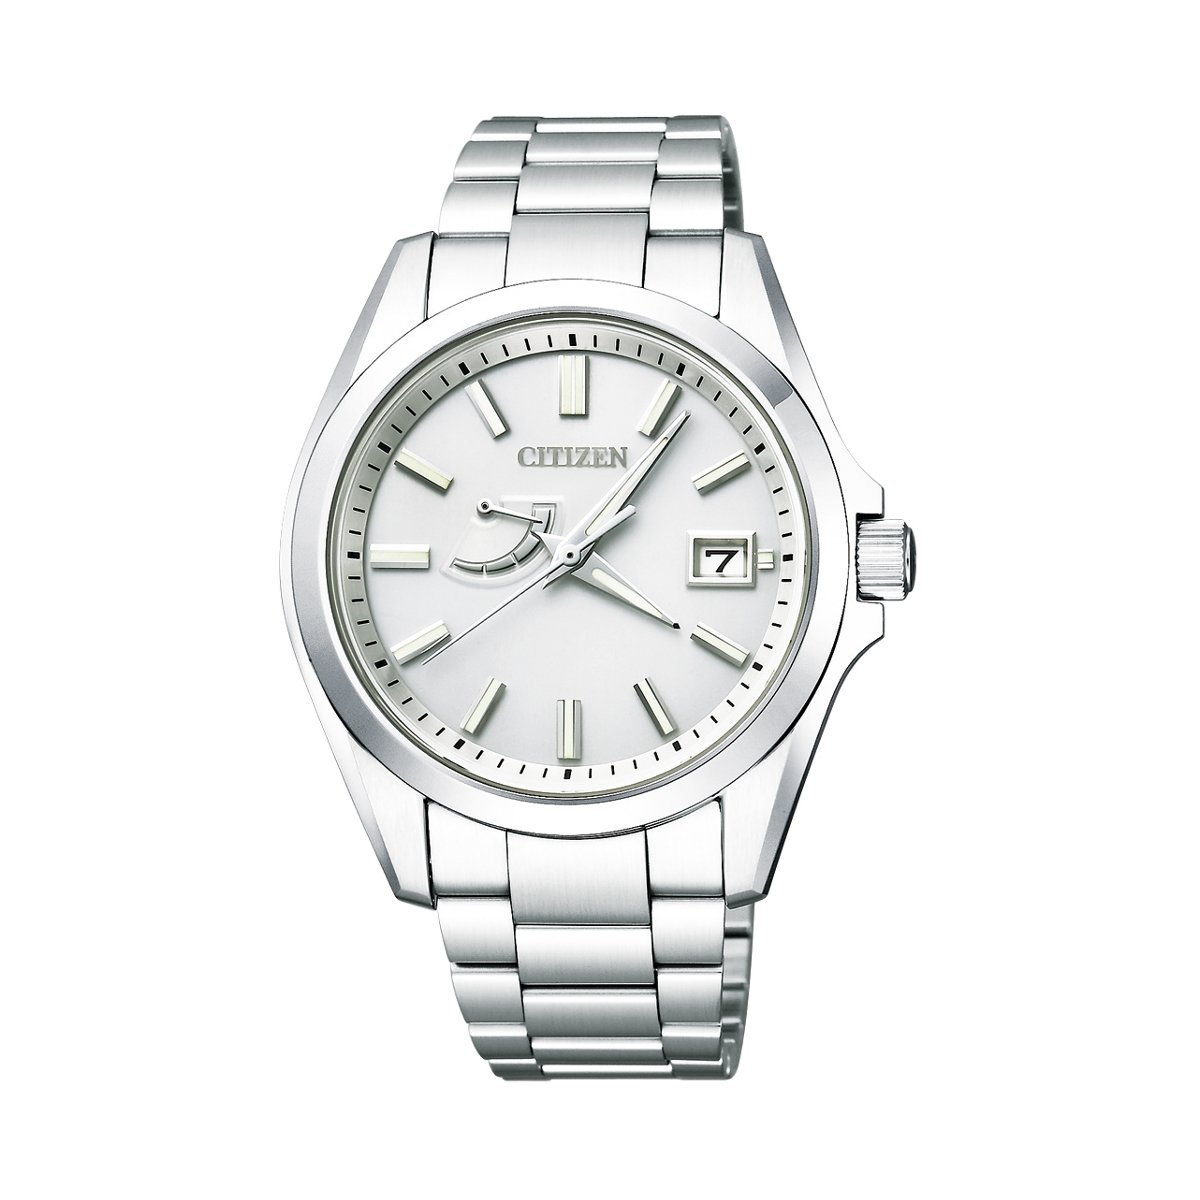 Montre THE CITIZEN Acier Eco Drive AQ1030-57A